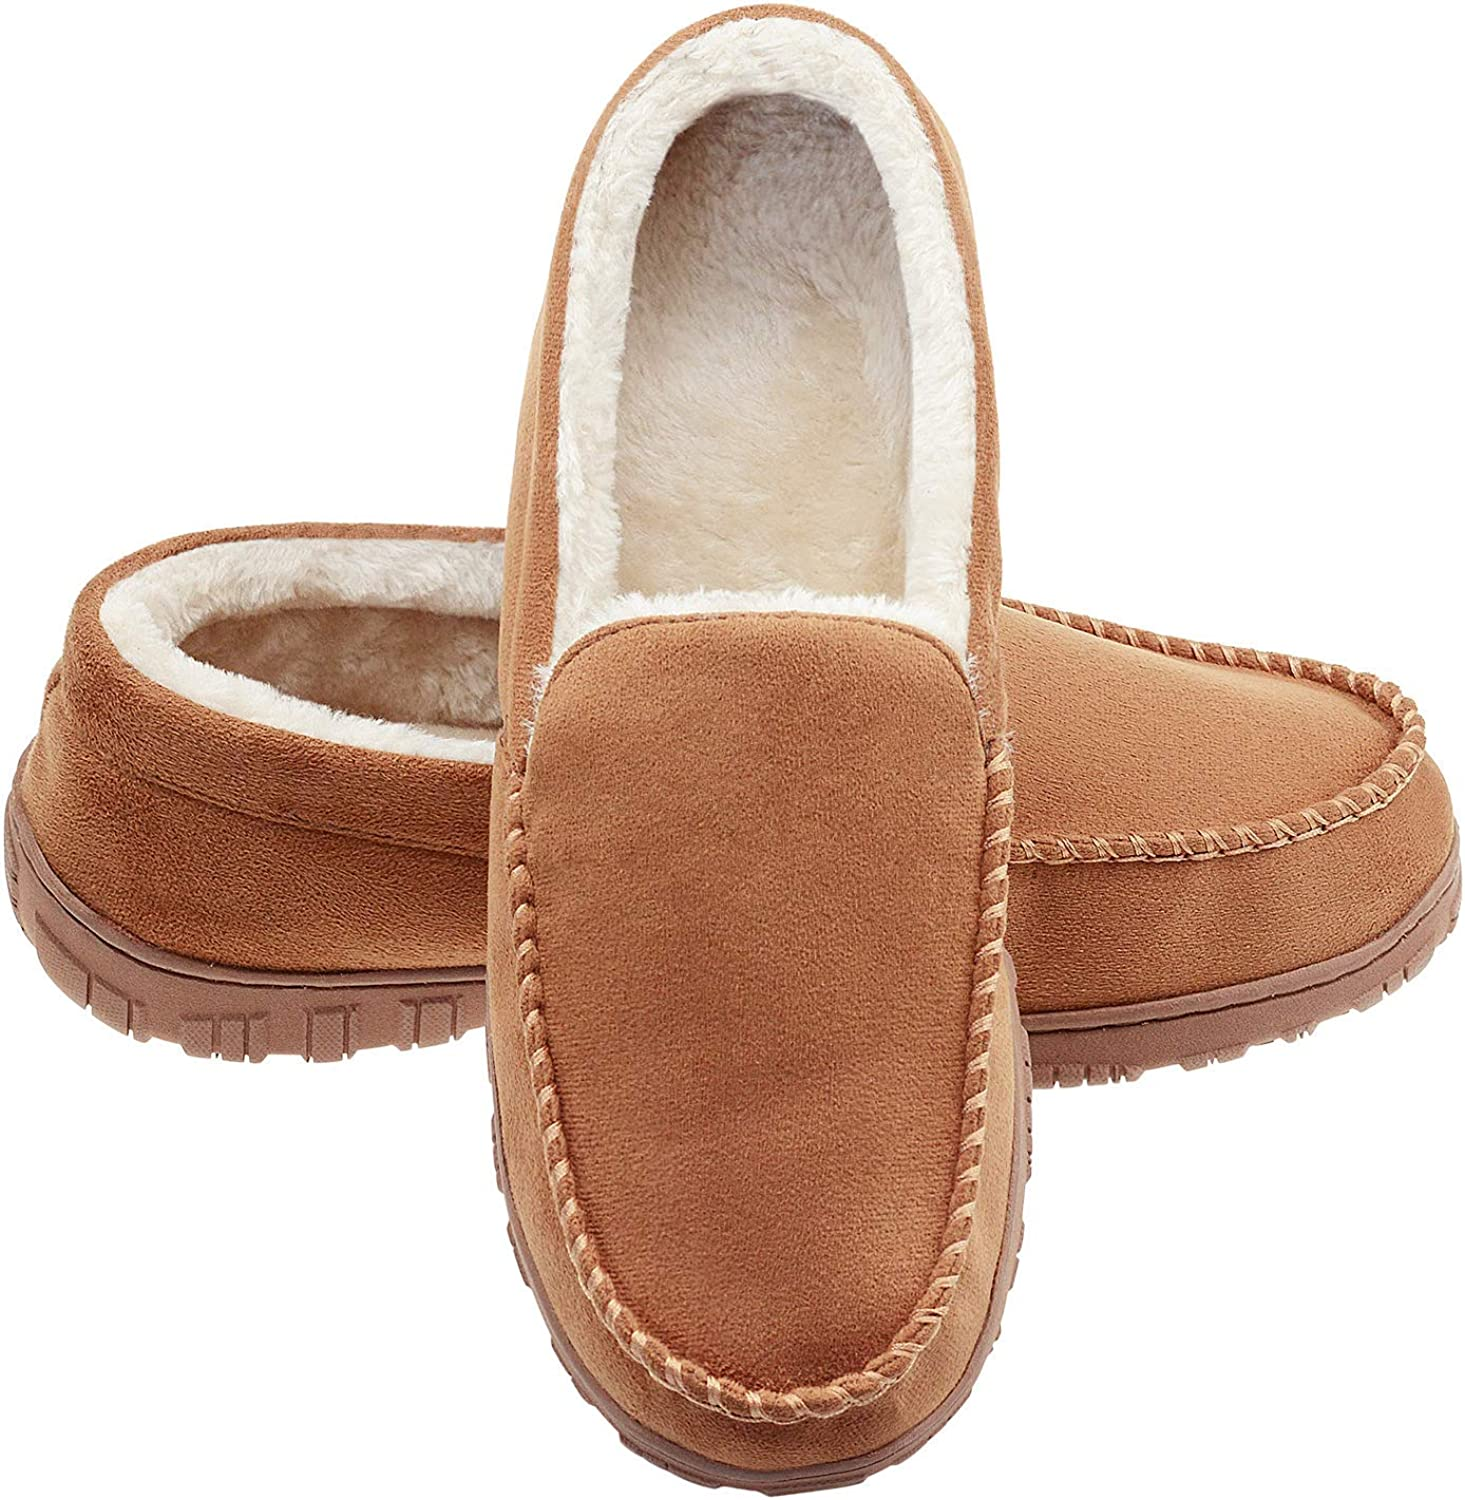 Mens Moccasins Slippers Adults Alfie Luxury Memory Foam Soft Fur Lined Slippers